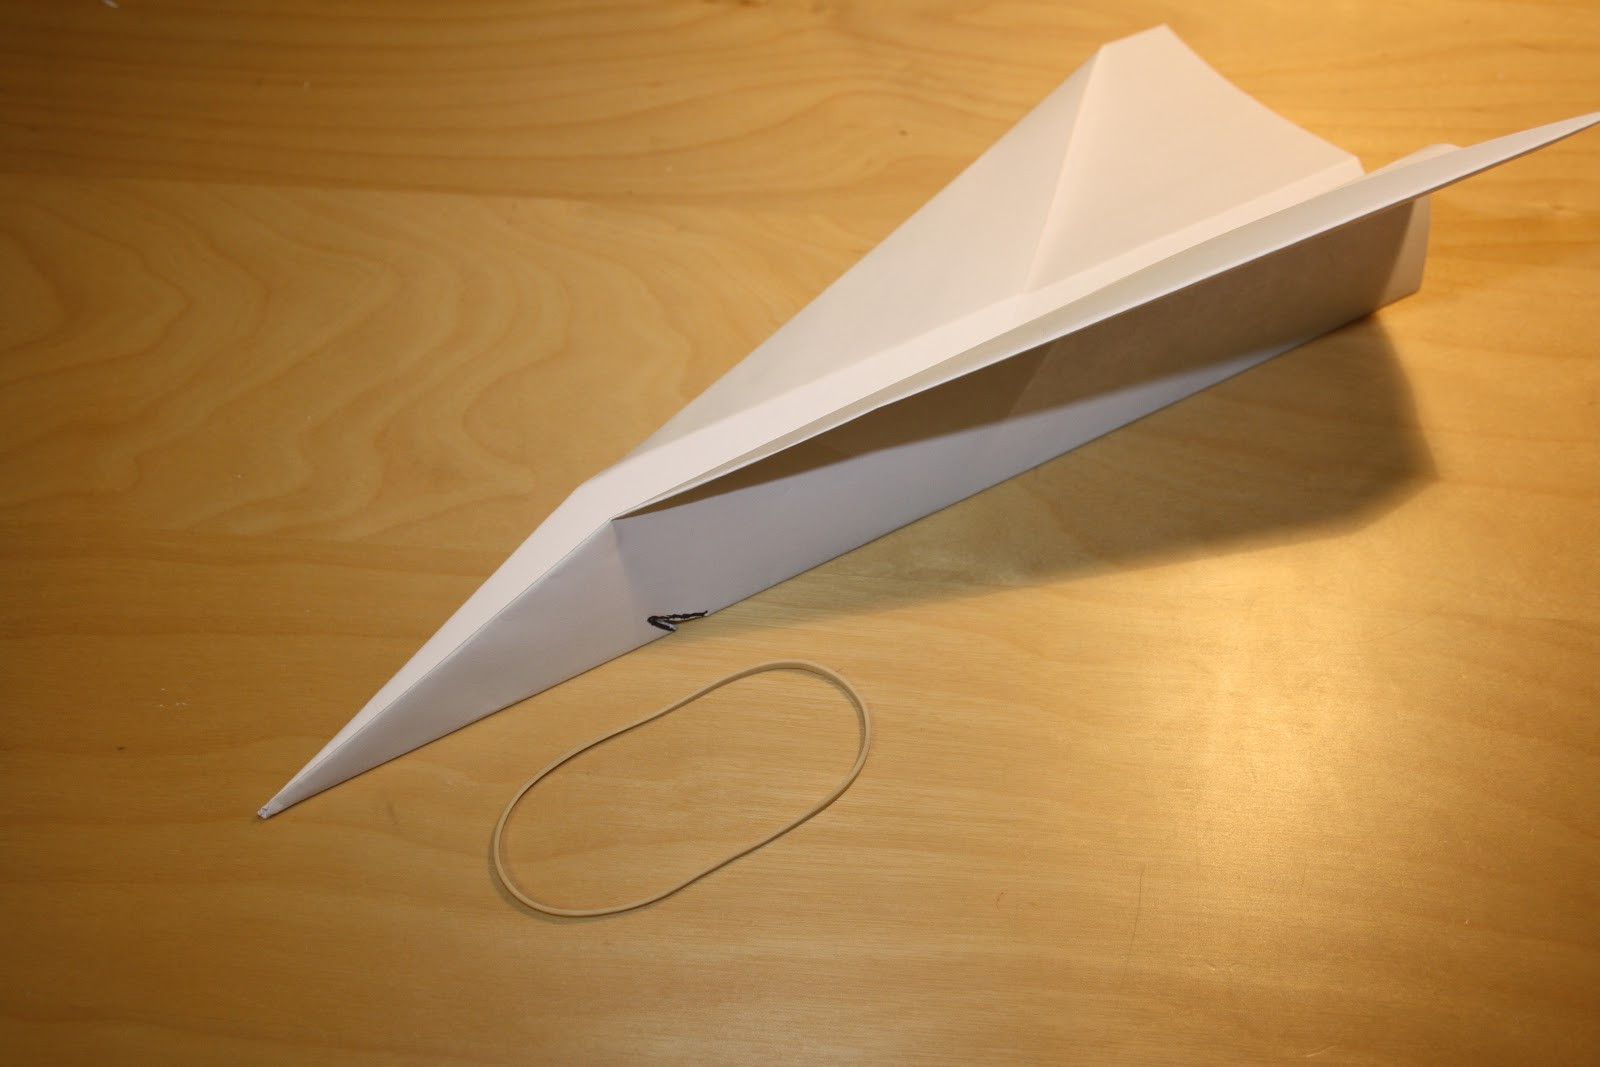 Jrc Live The Difference Between A Paper Glider And A